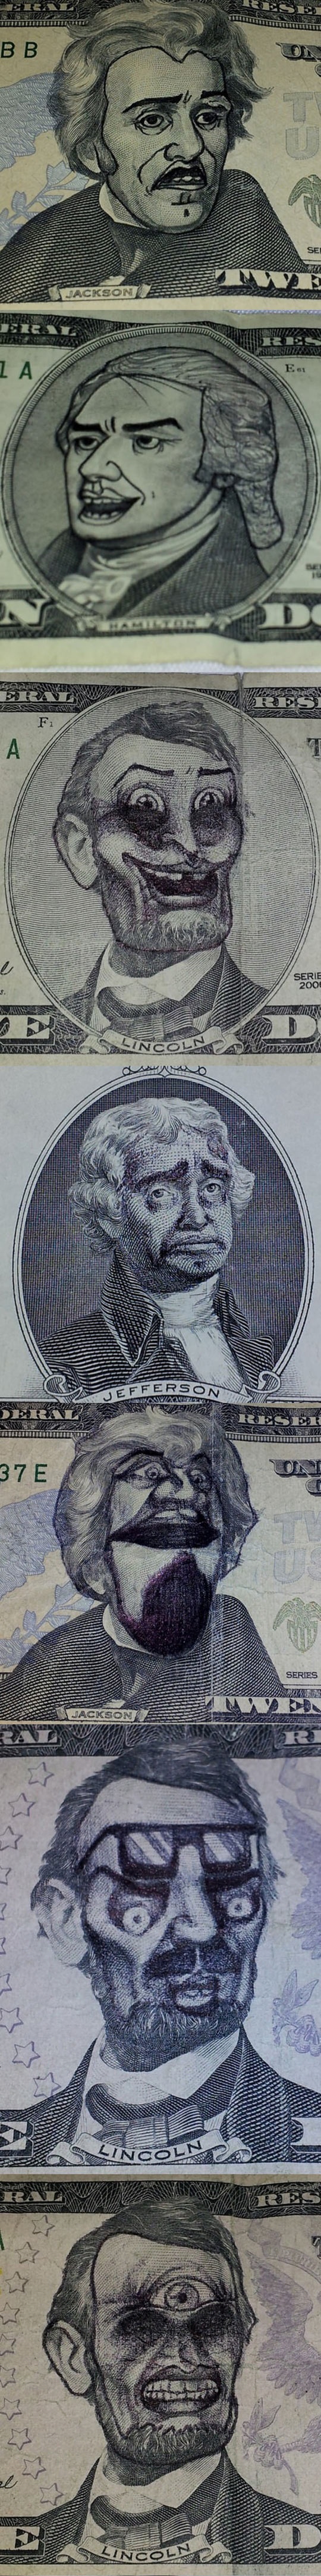 funny-bill-faces-painted-bored-Lincoln